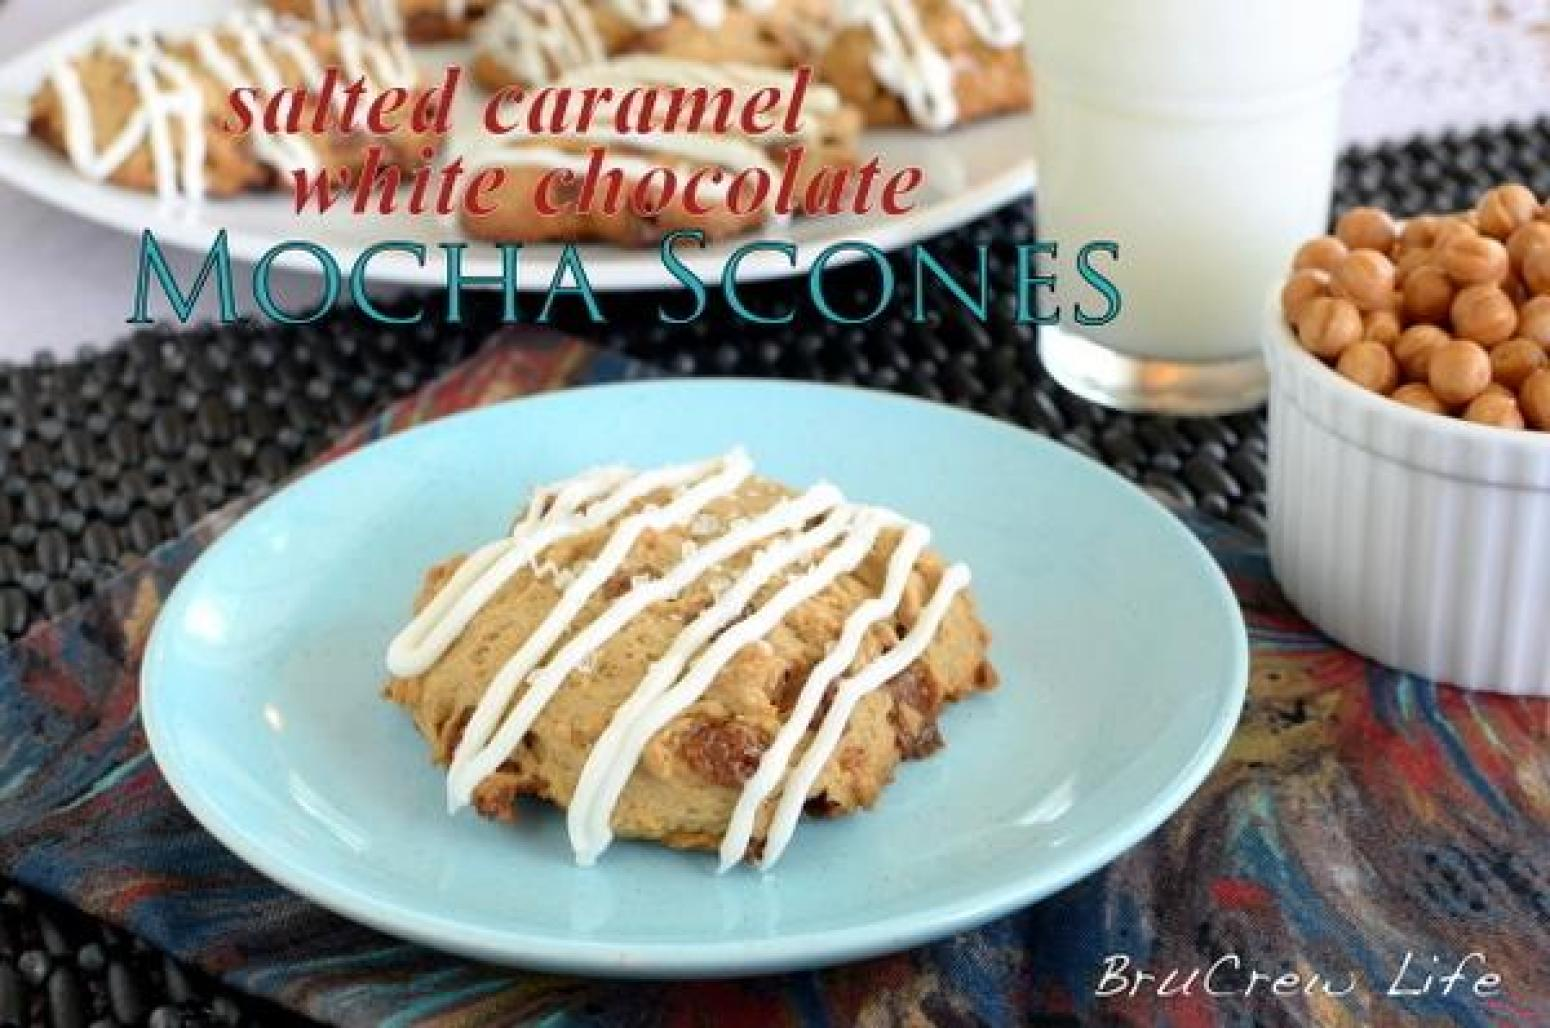 ... Caramel White Chocolate Mocha Scones Recipe | Just A Pinch Recipes